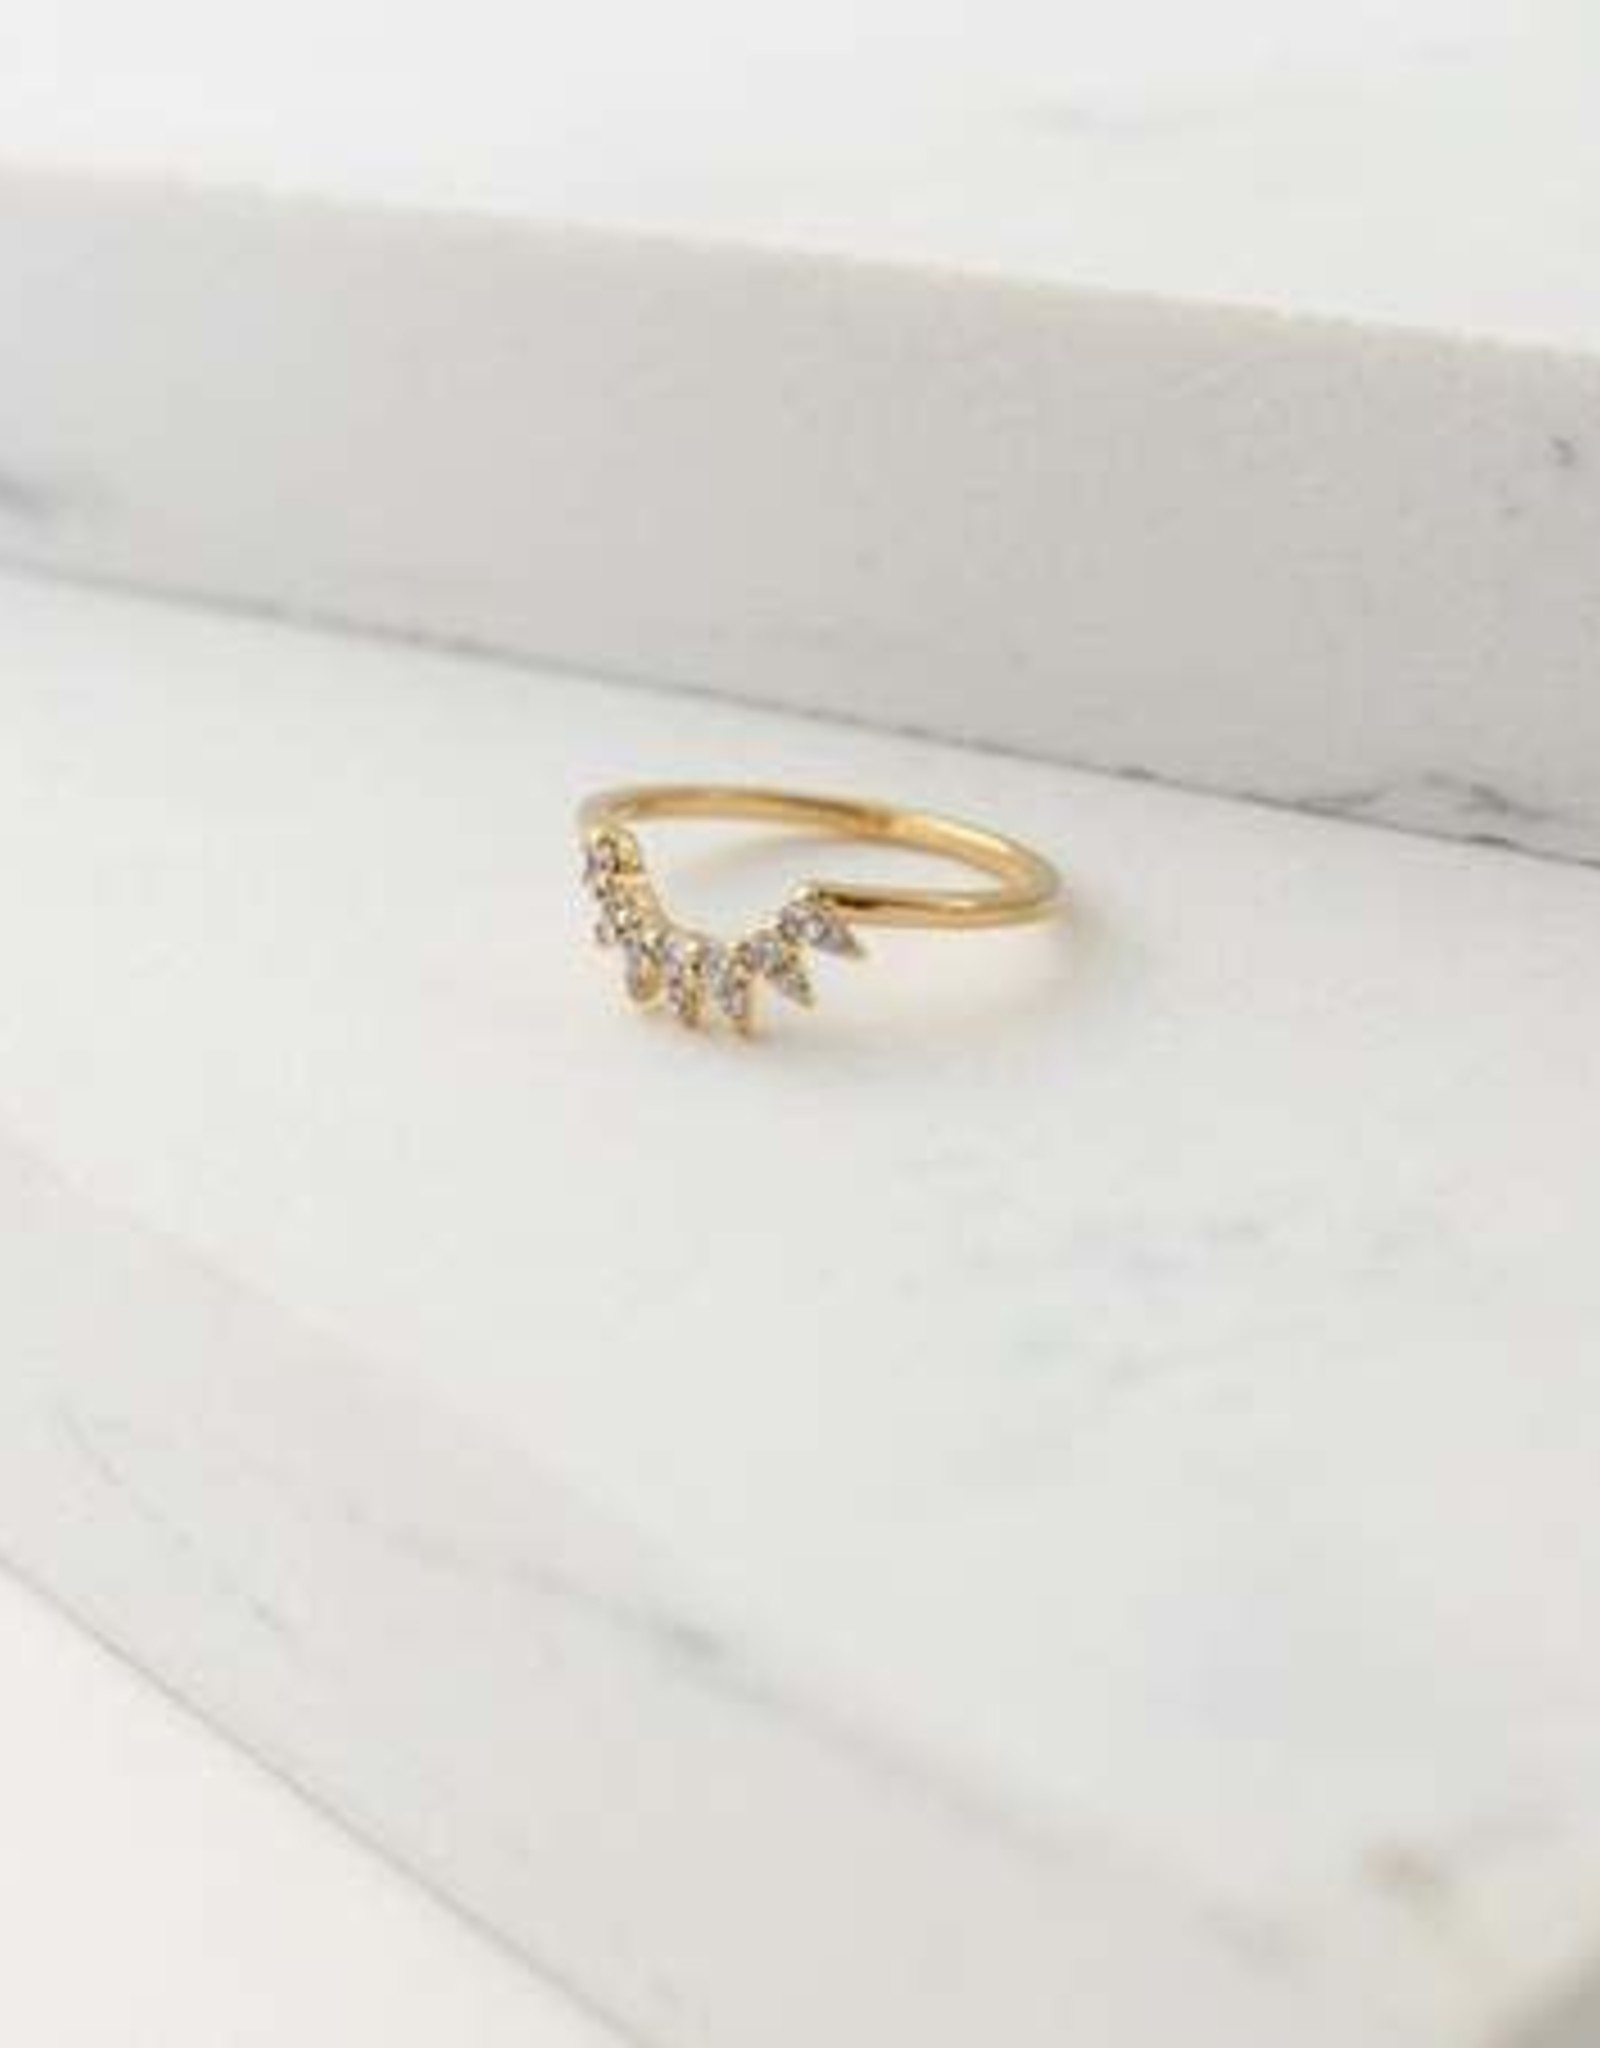 Ring, Gold, Nova, Size 6, Gold-plated Brass, Cubic Zirconia